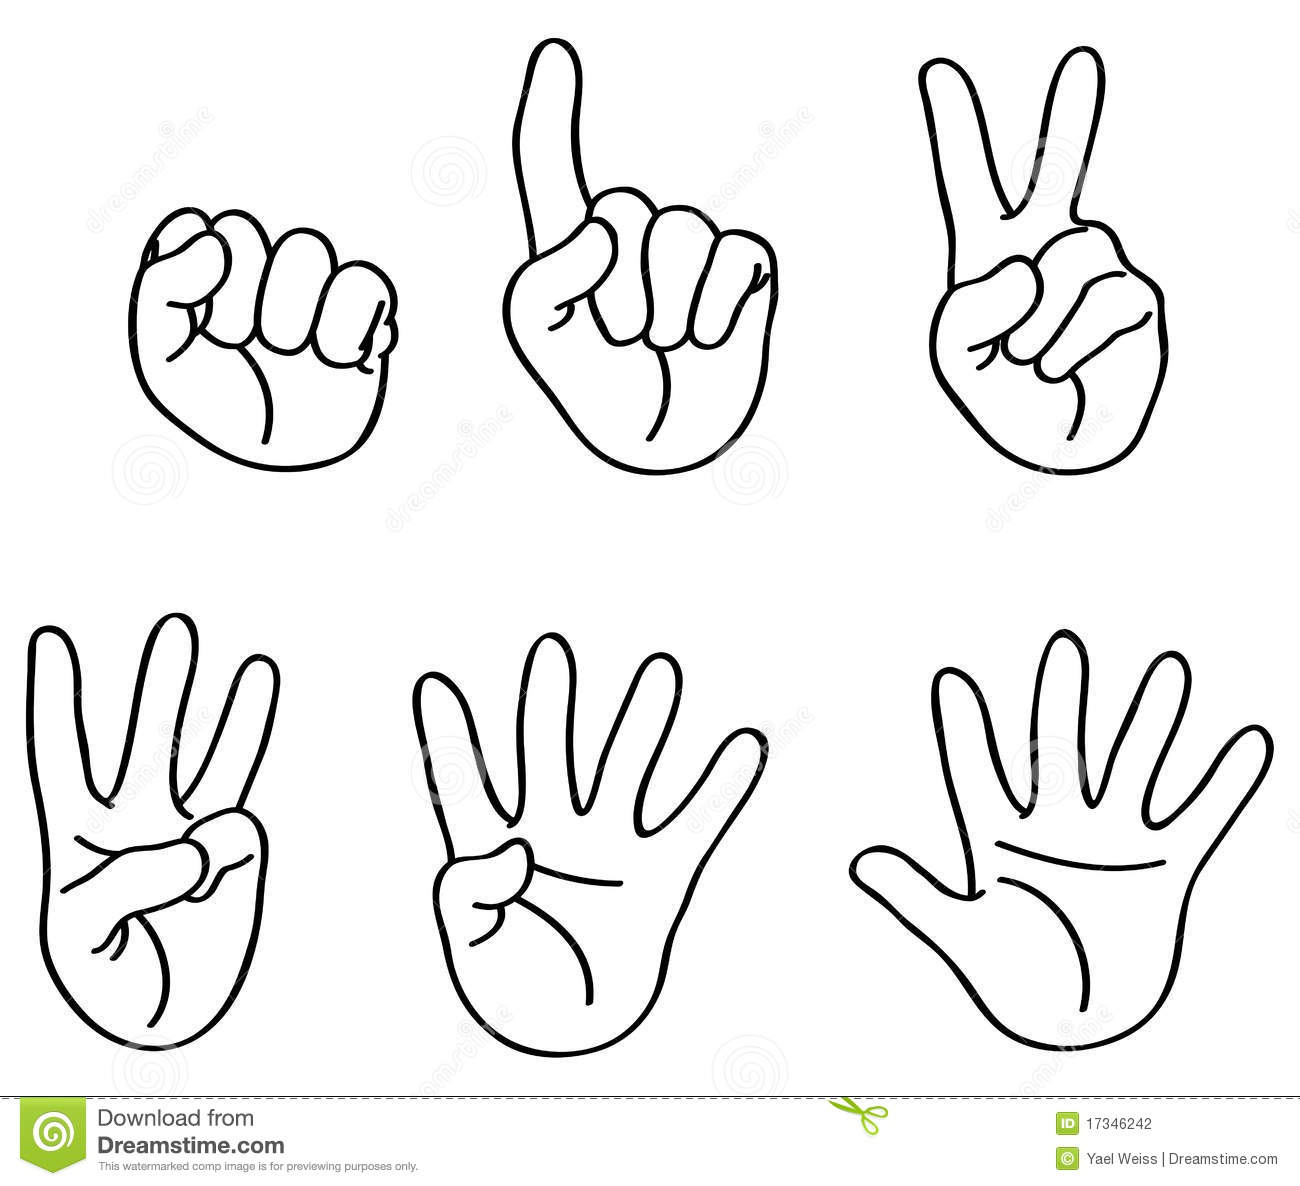 Counting Hands Clip Art.